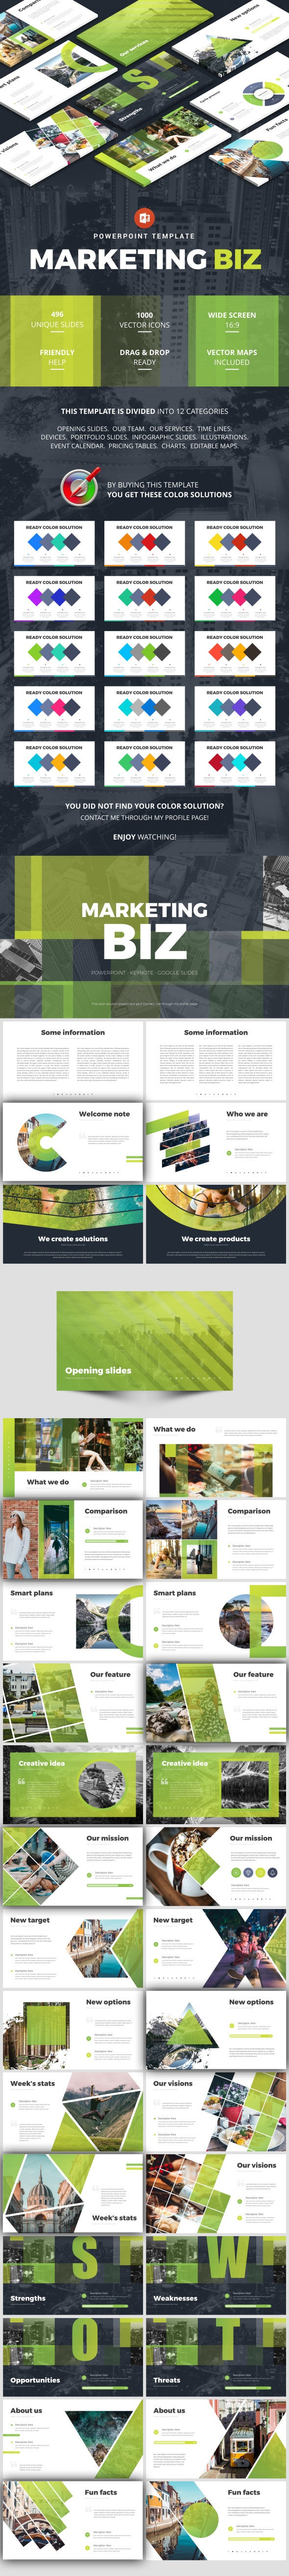 Business Marketing - Business PowerPoint Templates